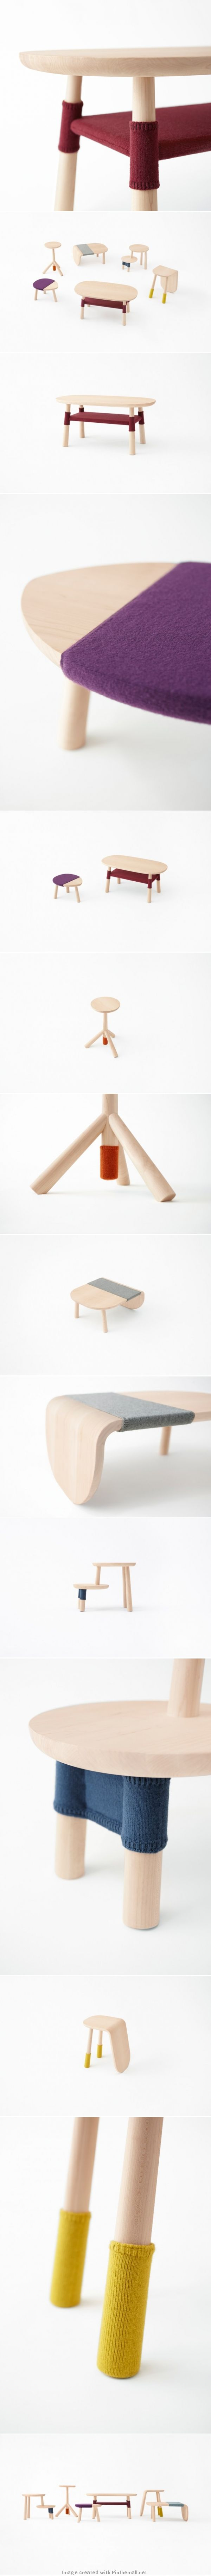 Nendo bases furniture for Walt Disney Japan